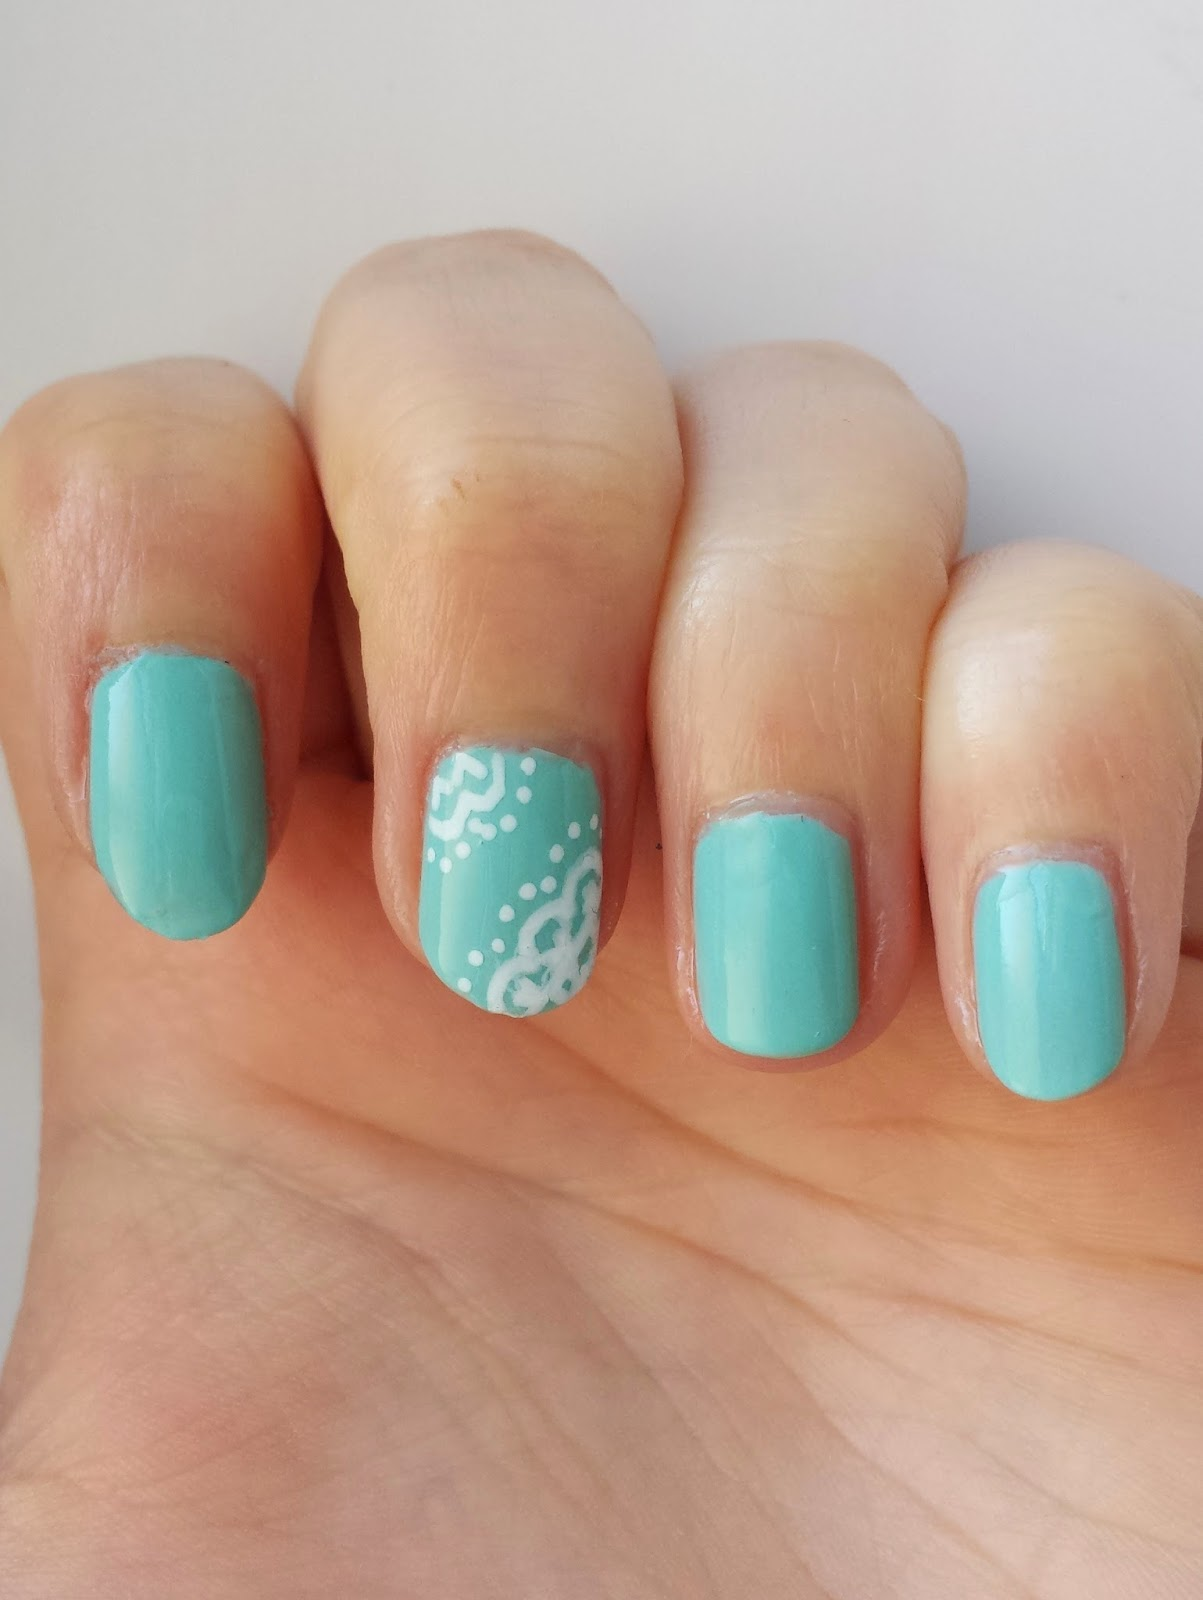 Clothes & Dreams: NOTD: Beach House and Lace: lace nail art